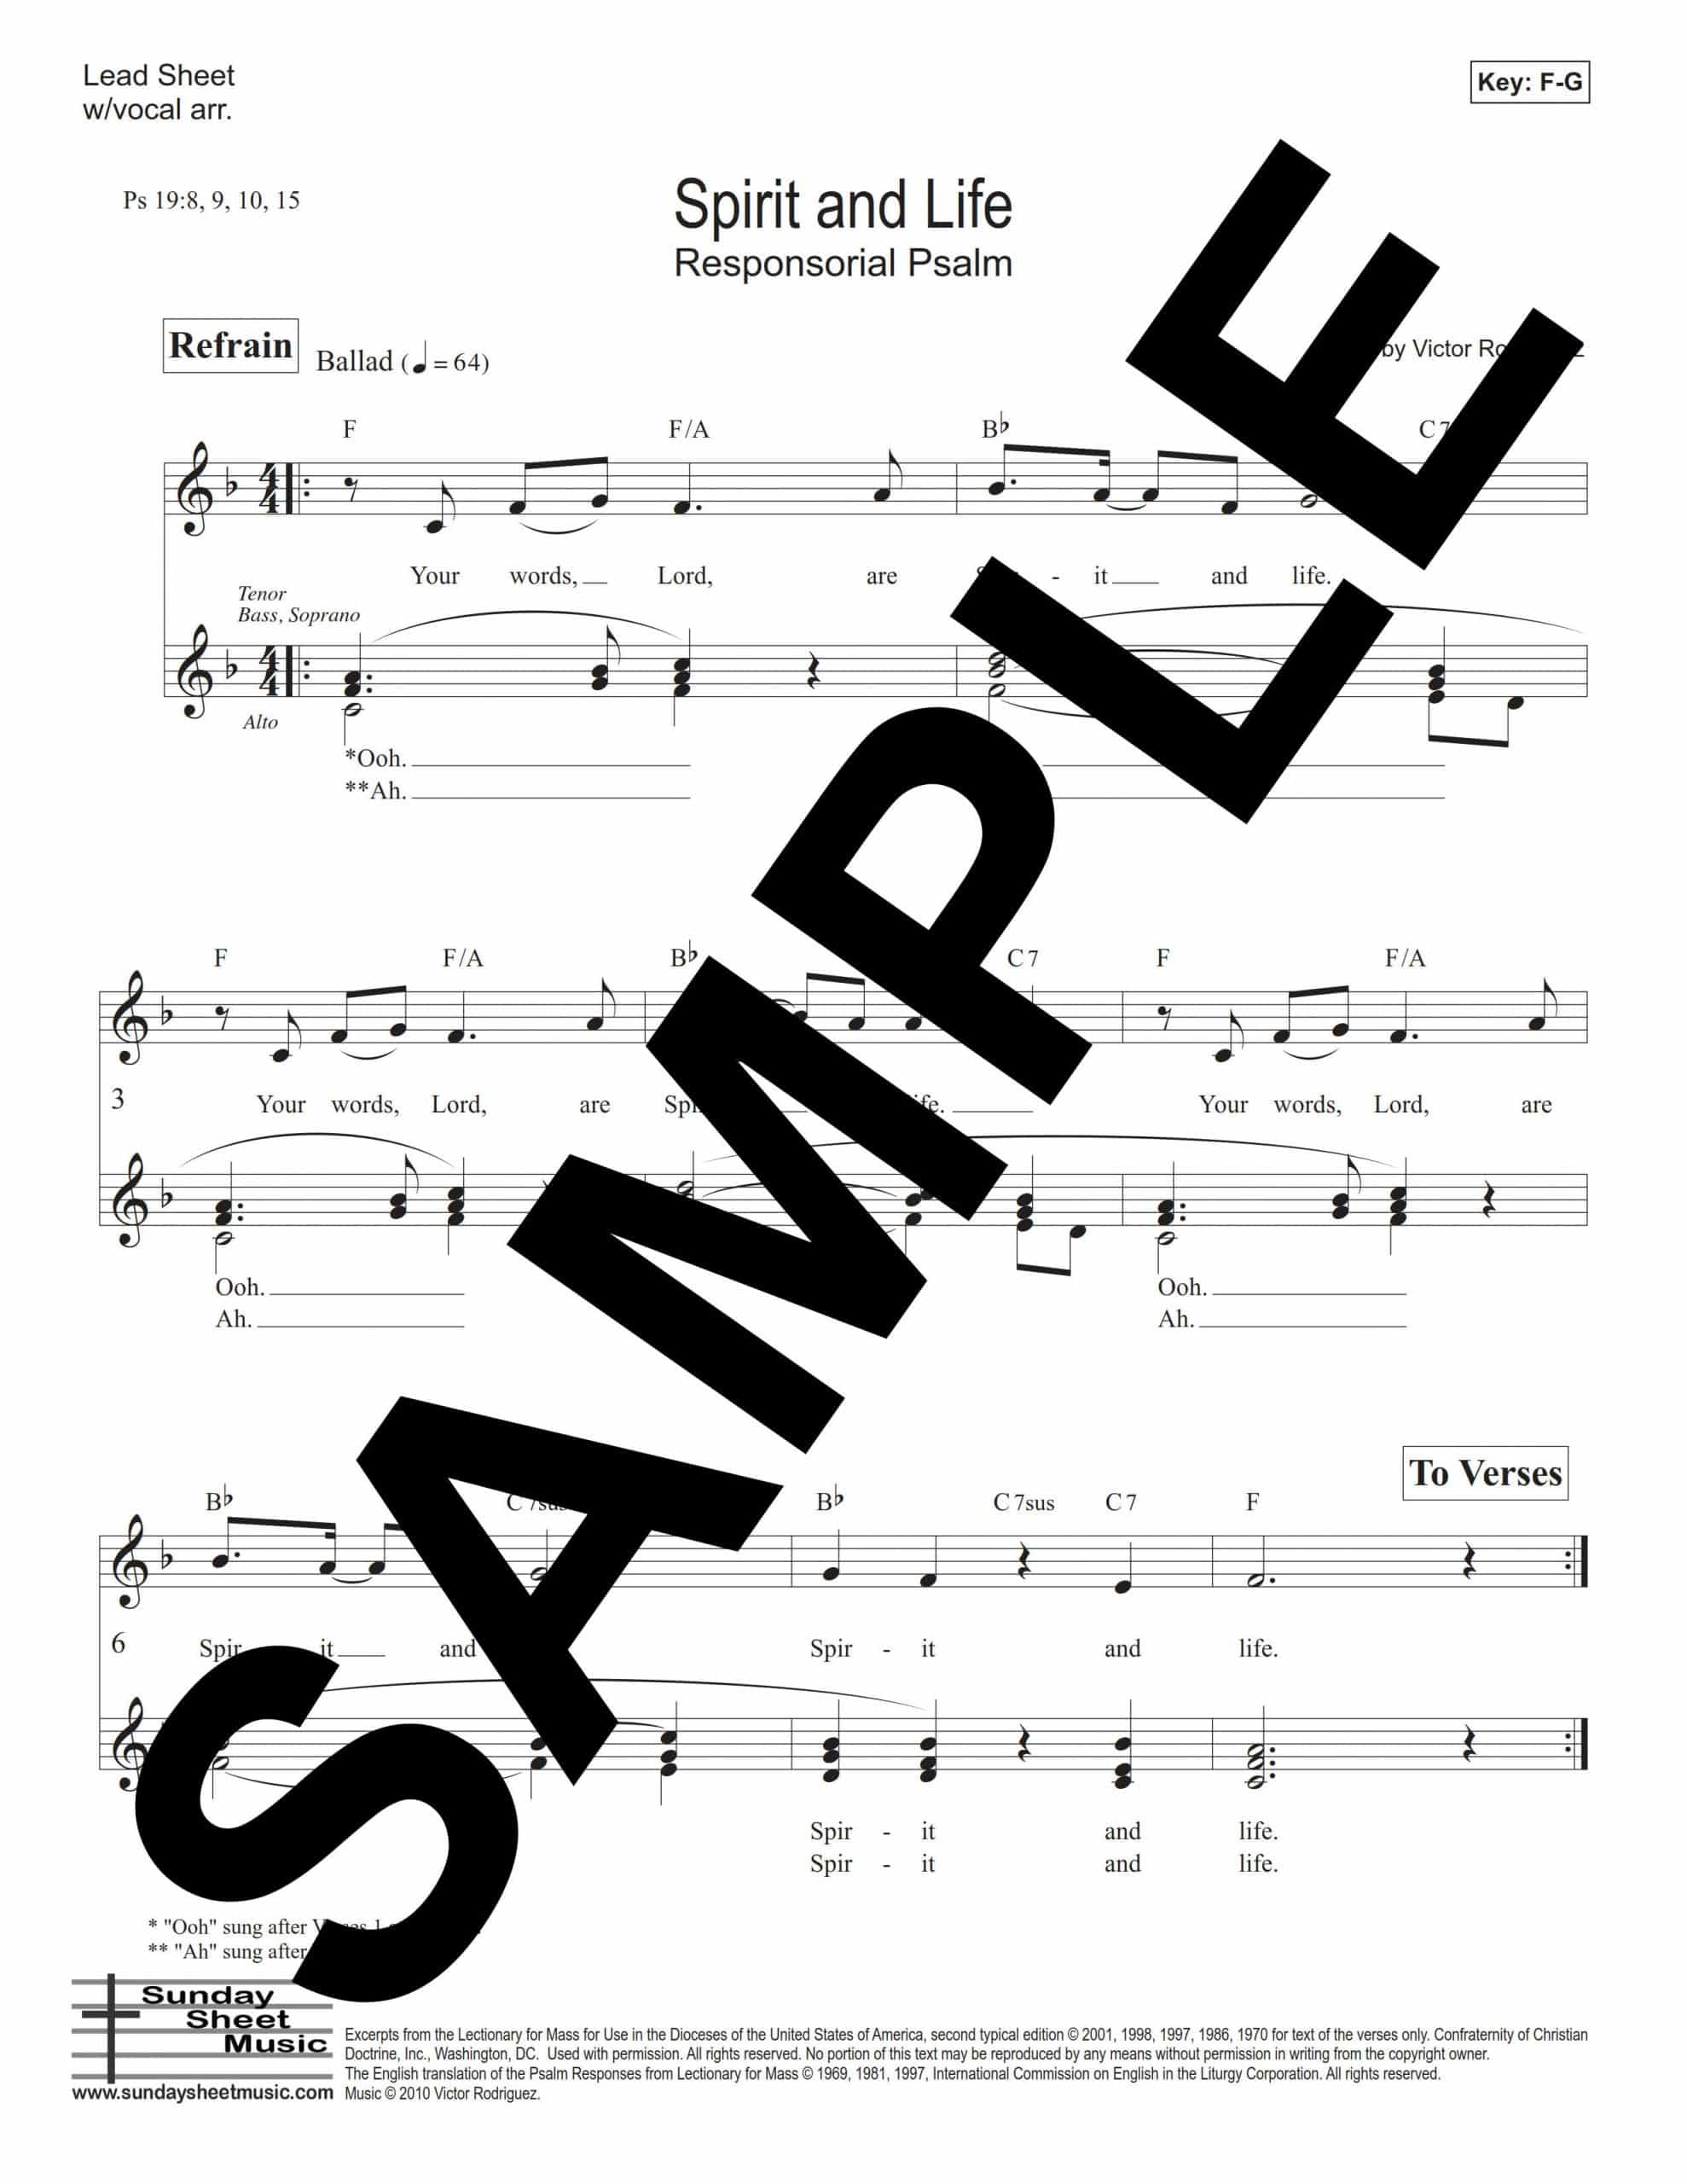 Psalm 19 Spirit And Life Rodriguez Sample Lead Sheet scaled